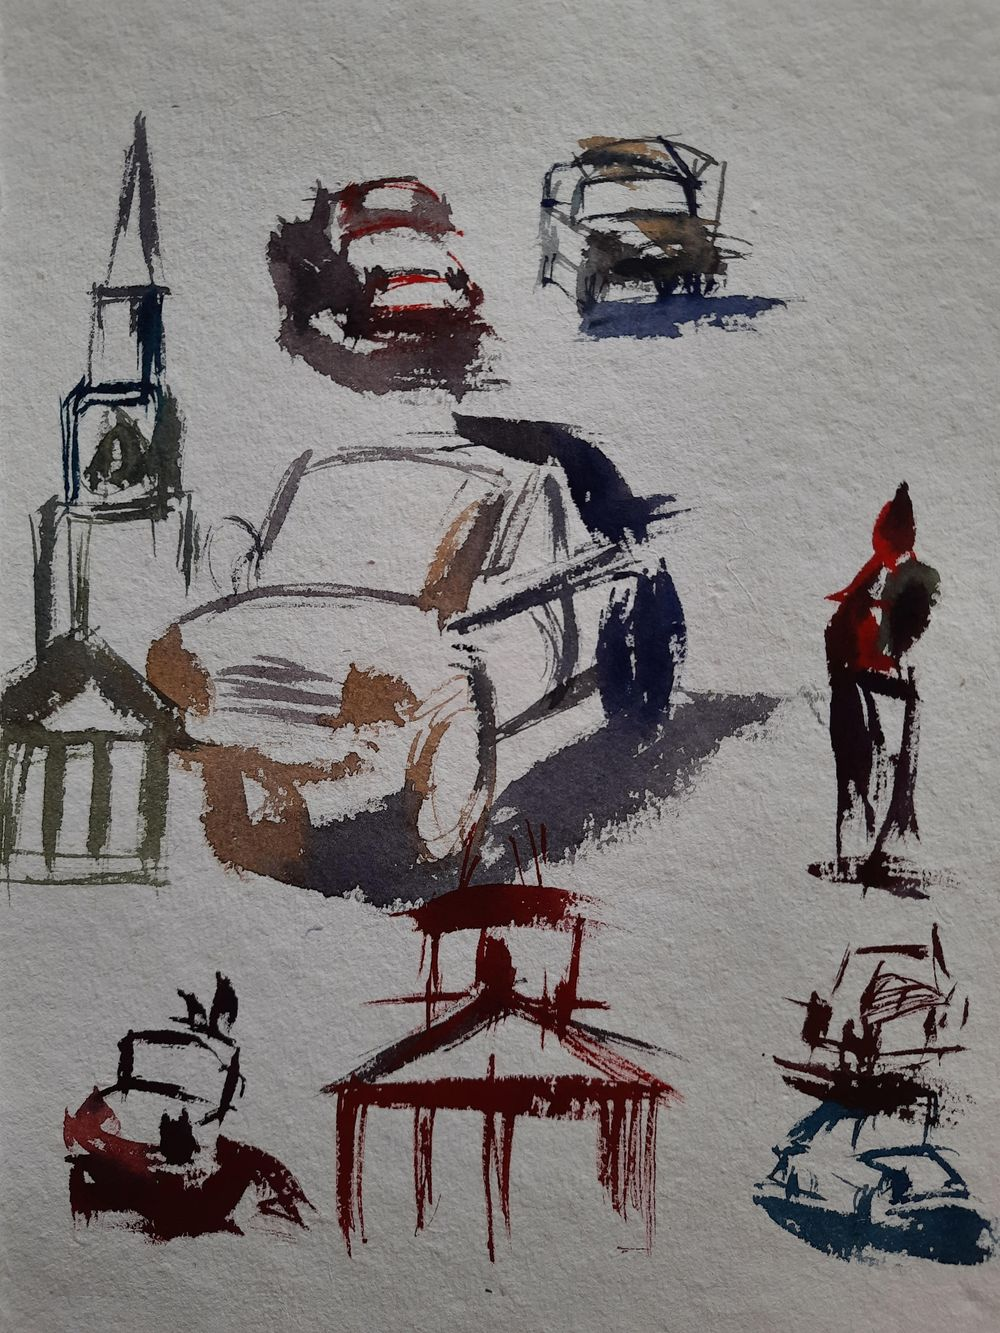 Watercolor workout - image 18 - student project